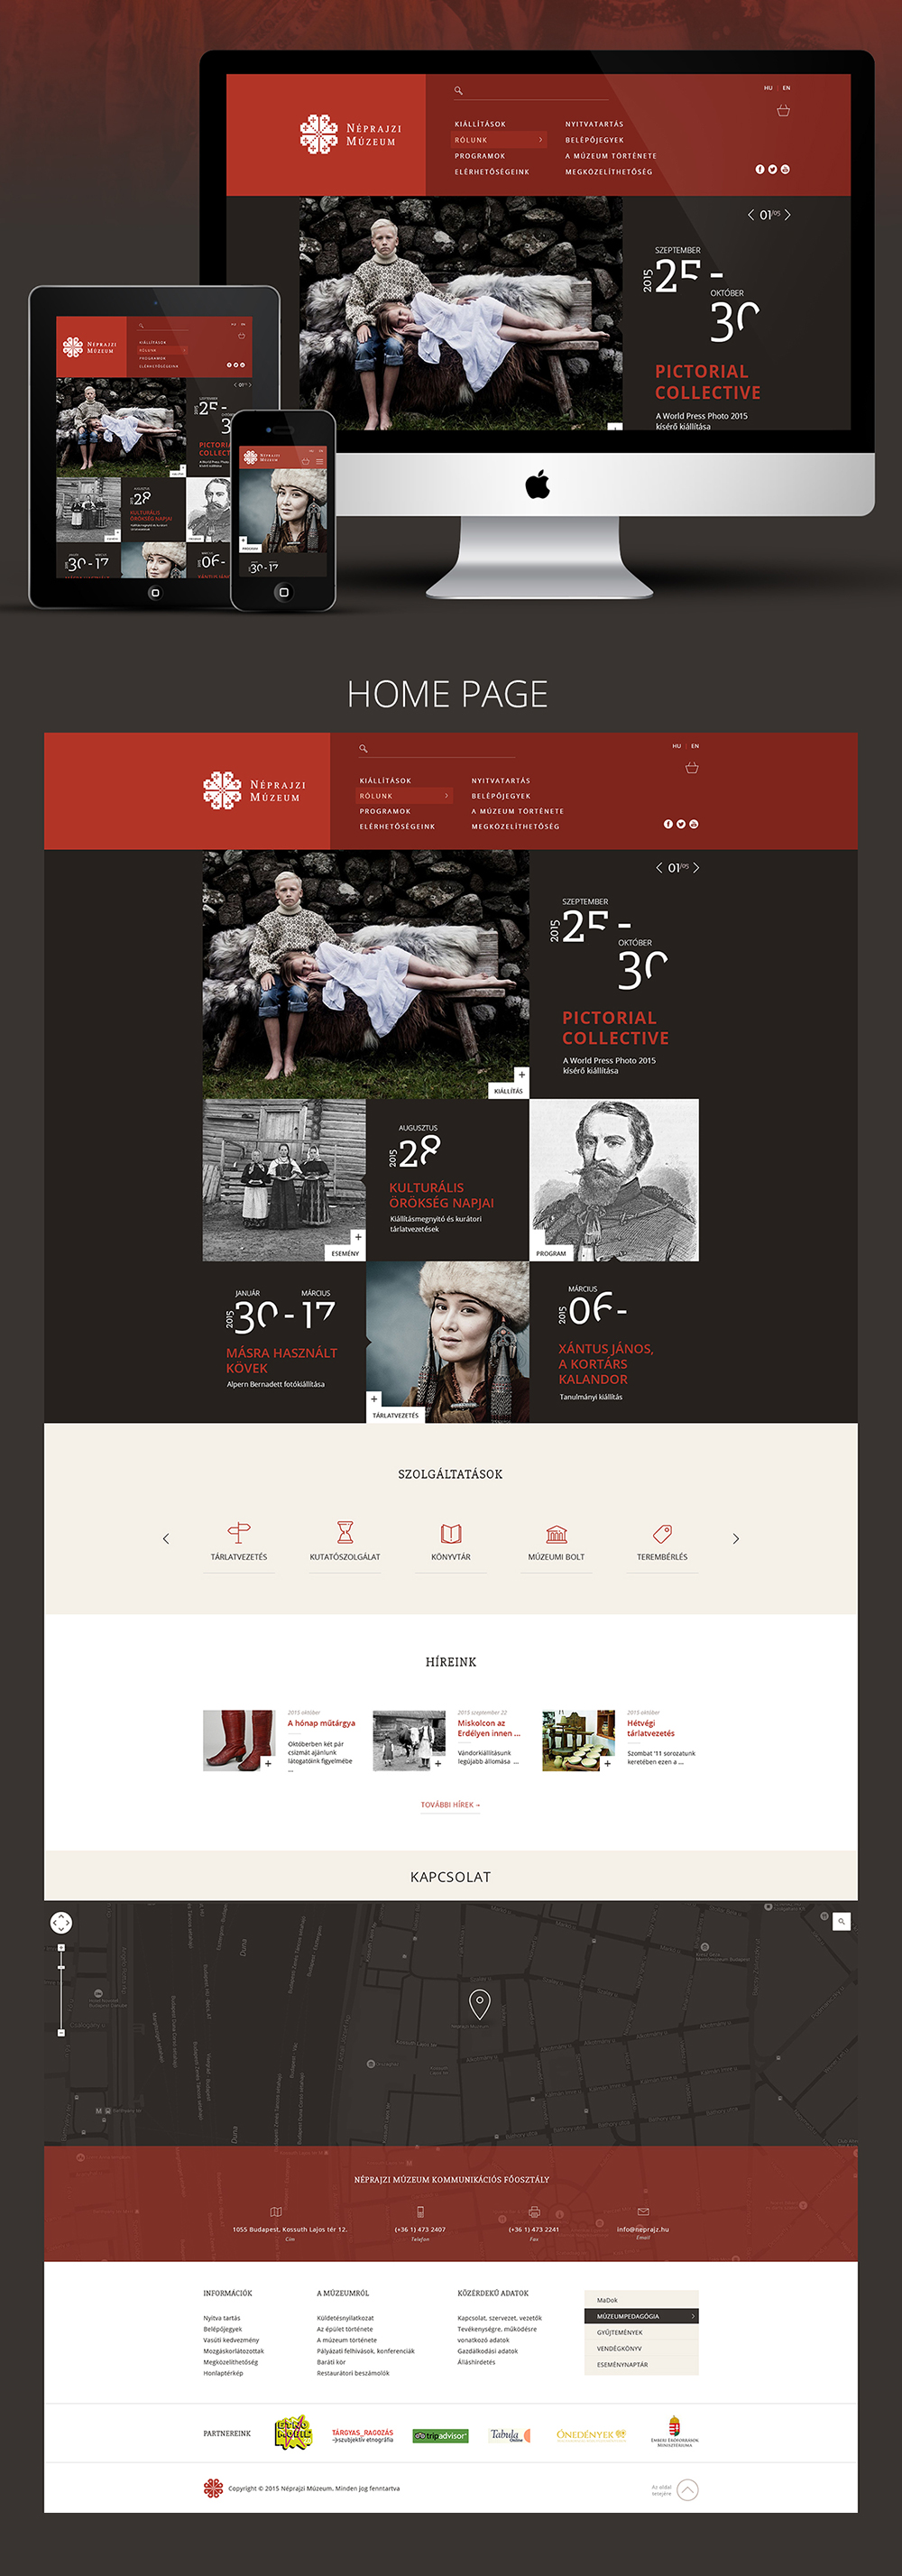 Photo gallery exhibition website free psd landing page download photo gallery exhibition website free psd landing page www website template website layout website webpage web pronofoot35fo Choice Image